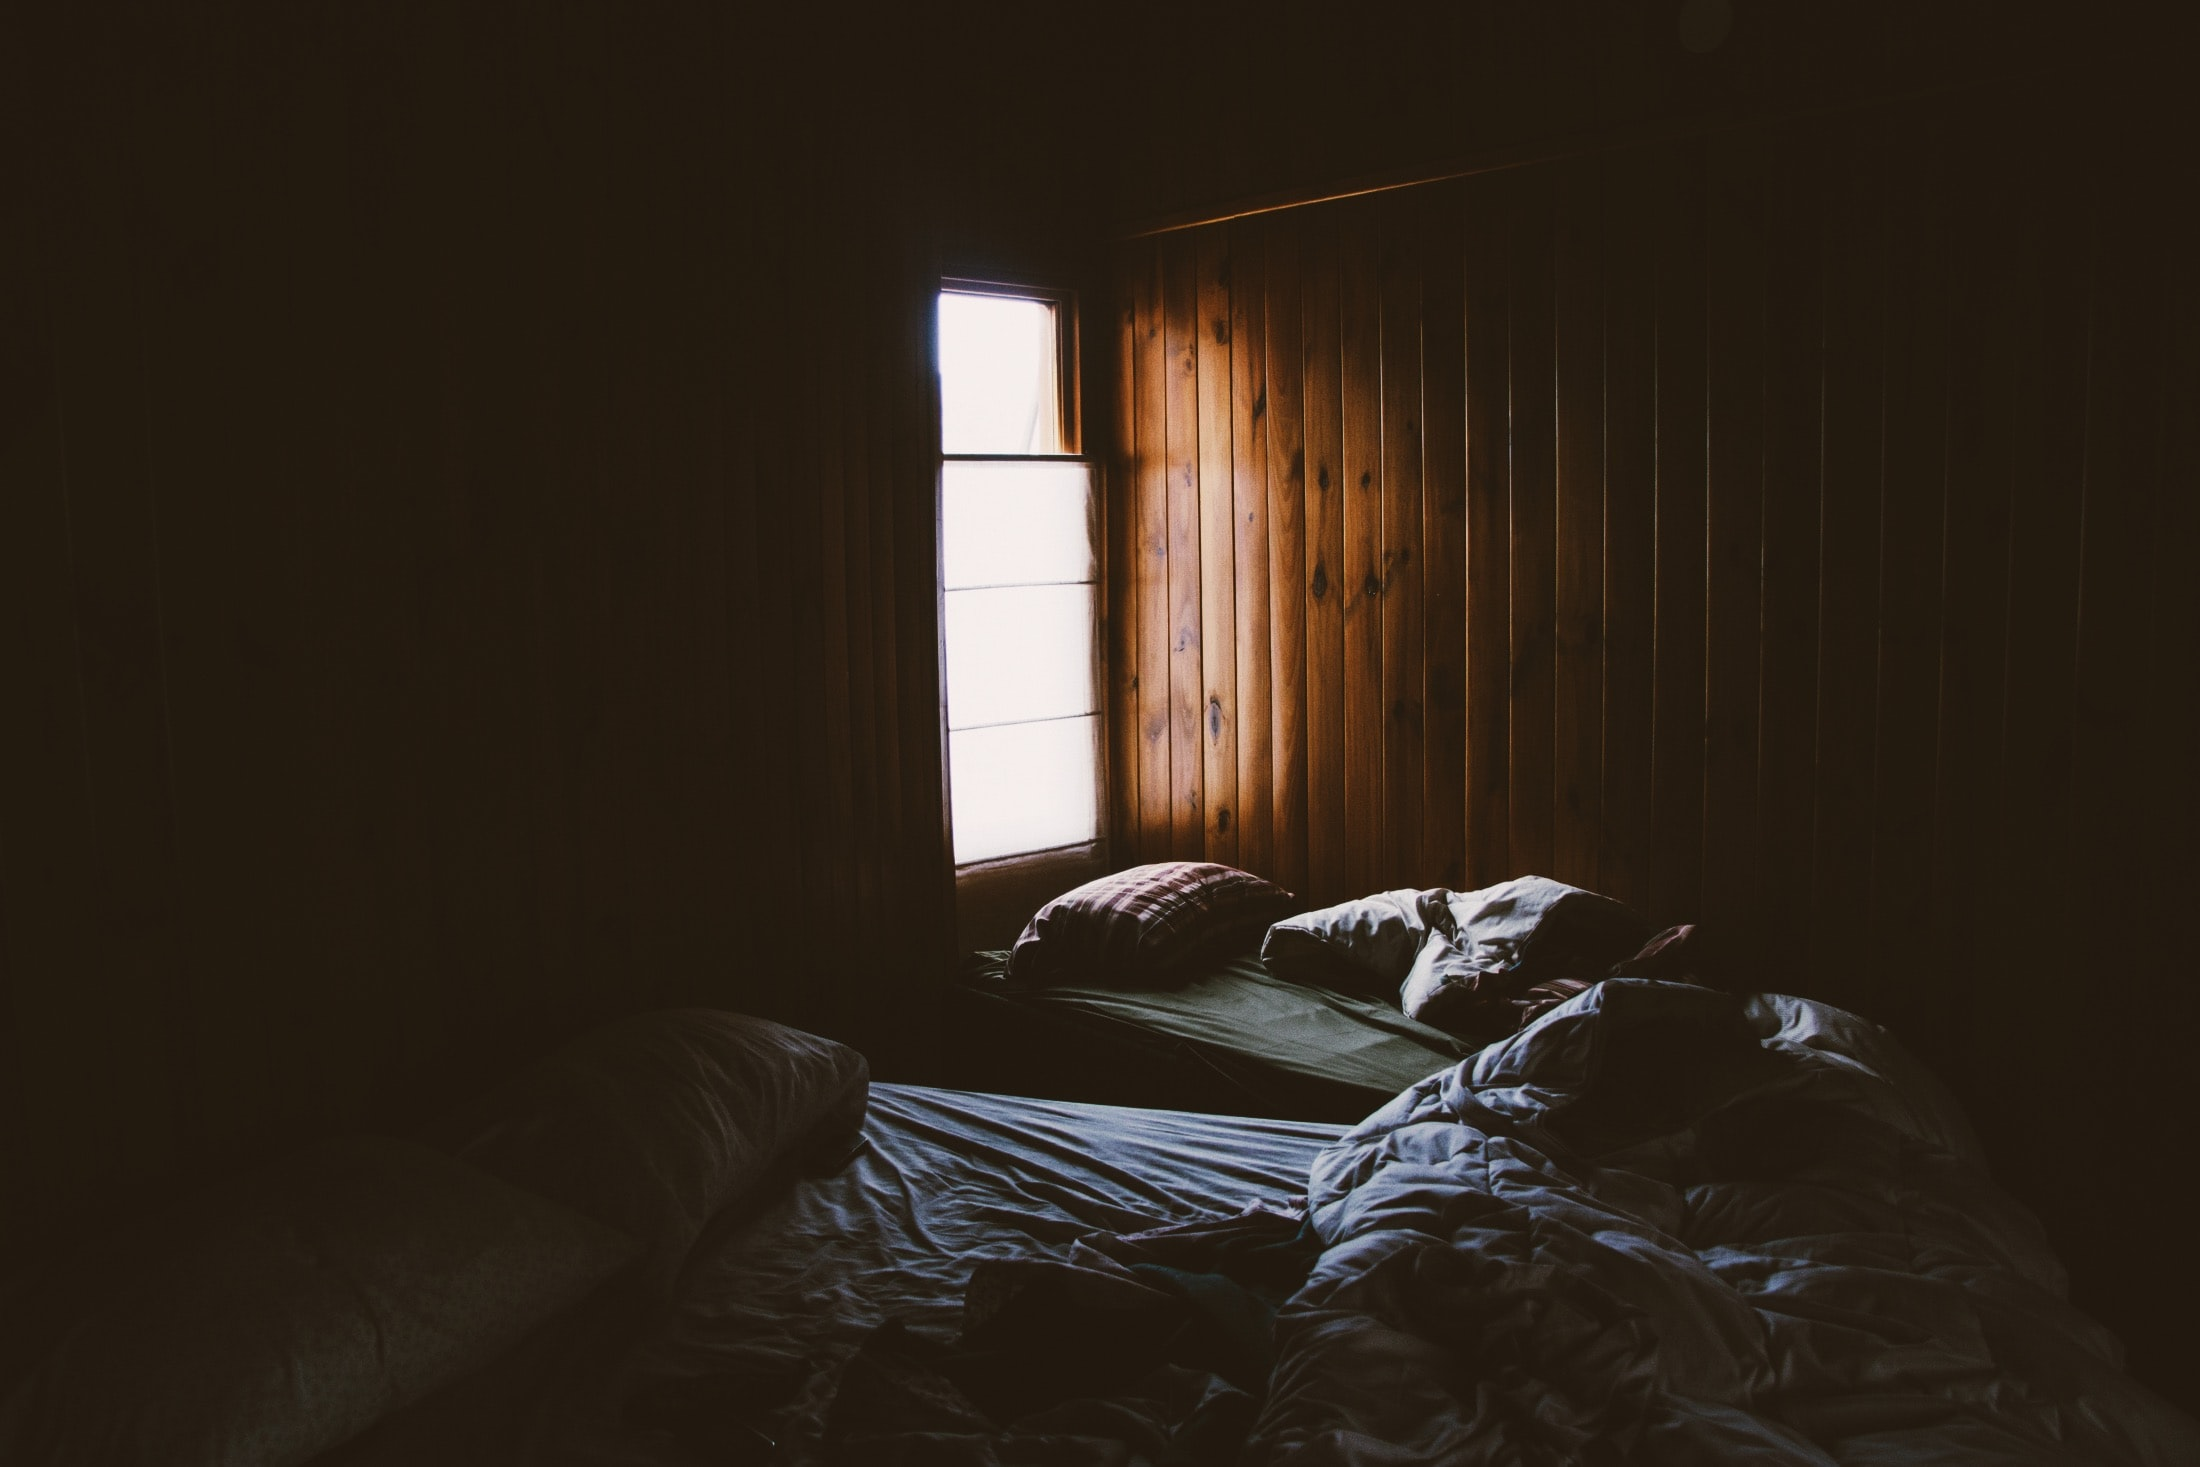 Pale light pouring into a cabin through a small window illuminates two unmade beds